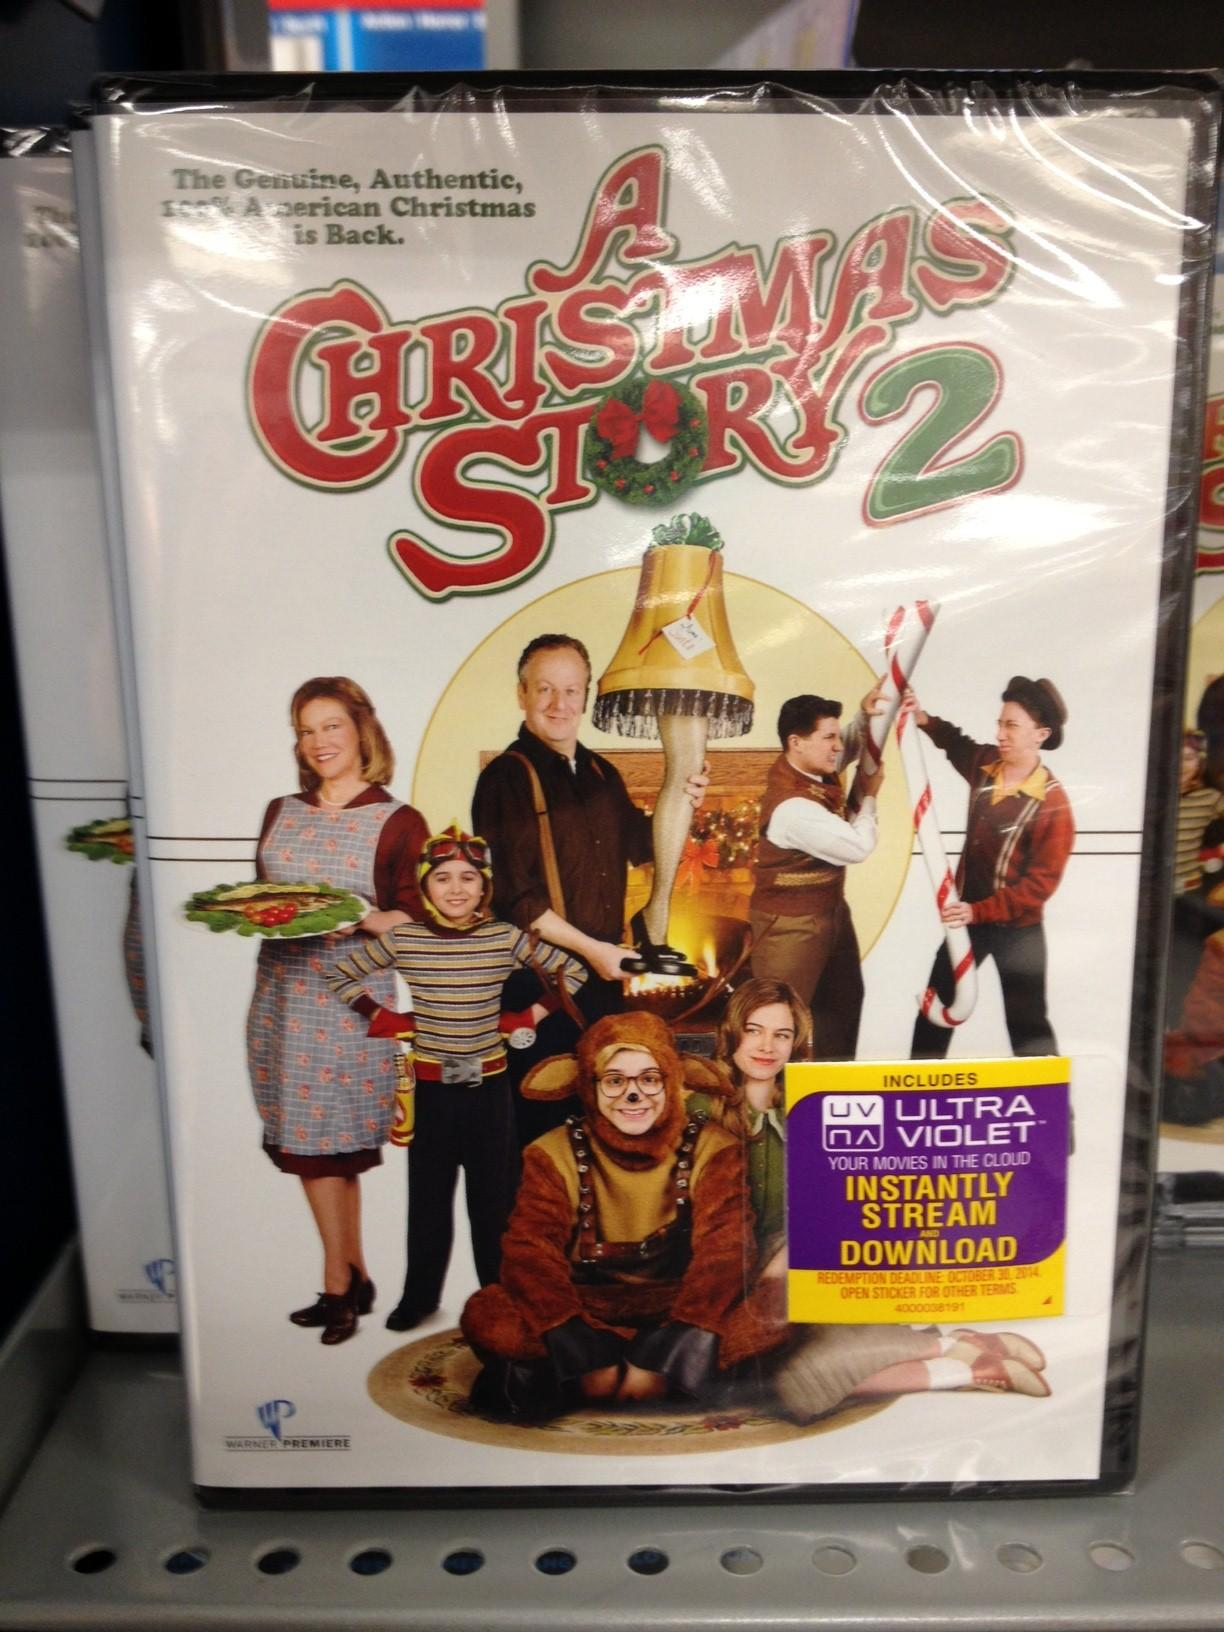 Christmas Story 2.A Christmas Story 2 Or Has Anyone Seriously Seen This